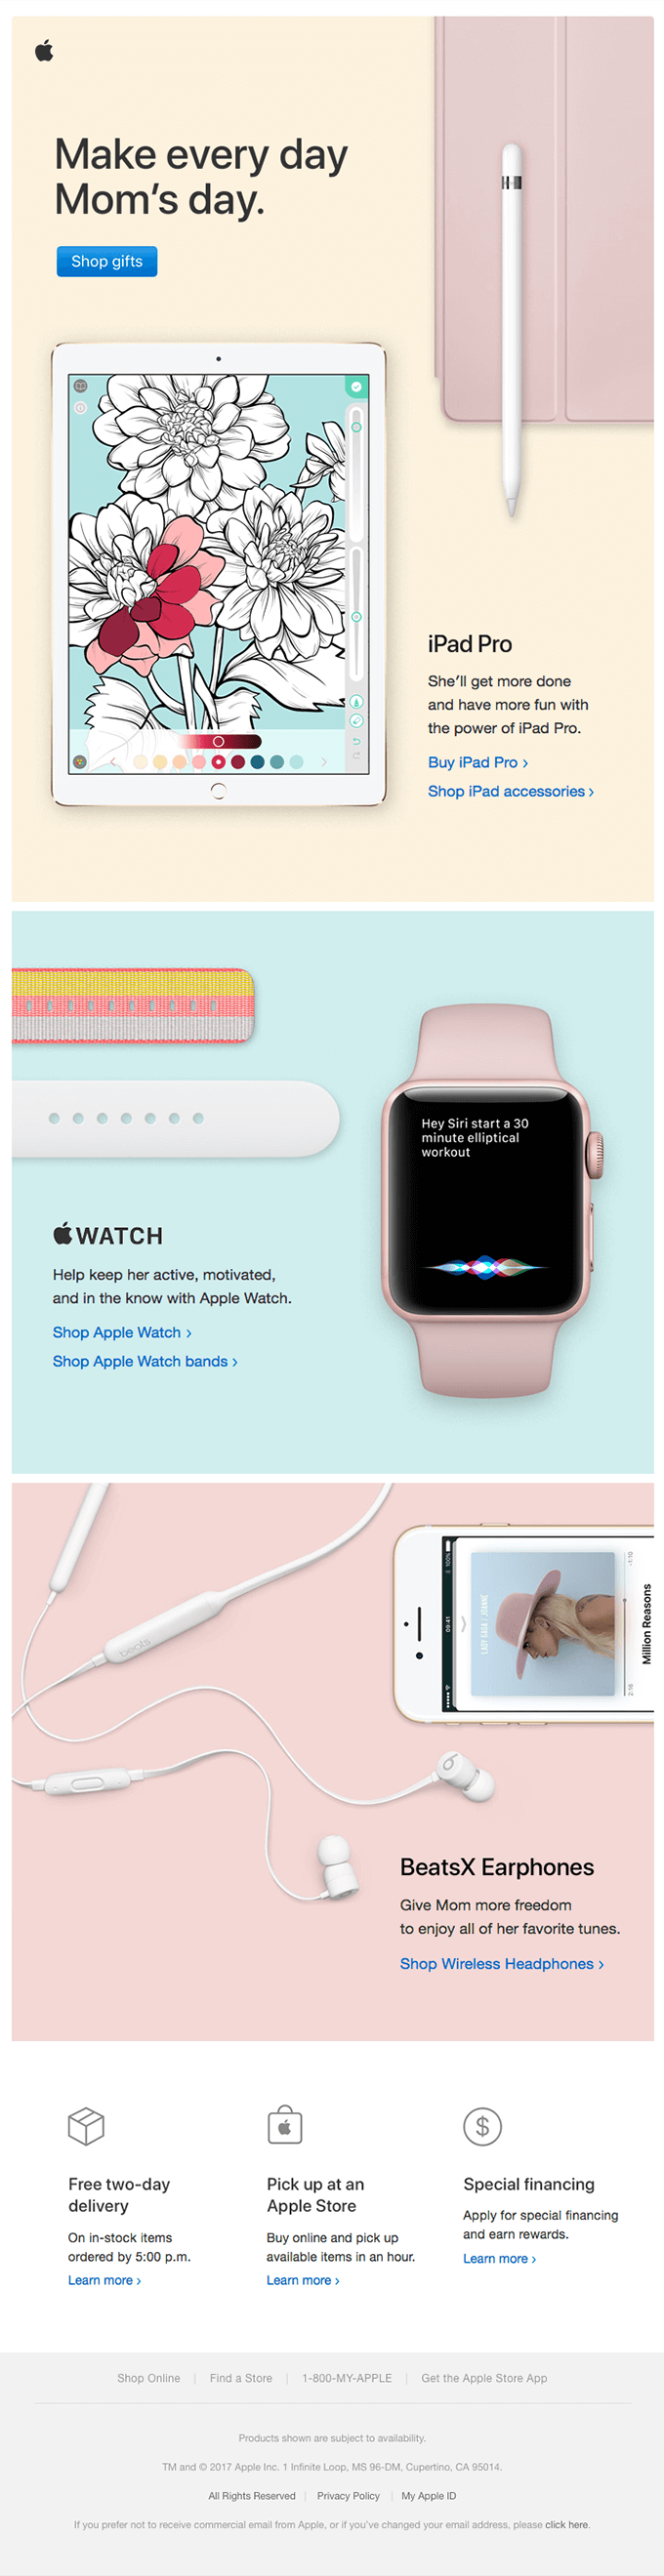 Apple Mothers Day Email